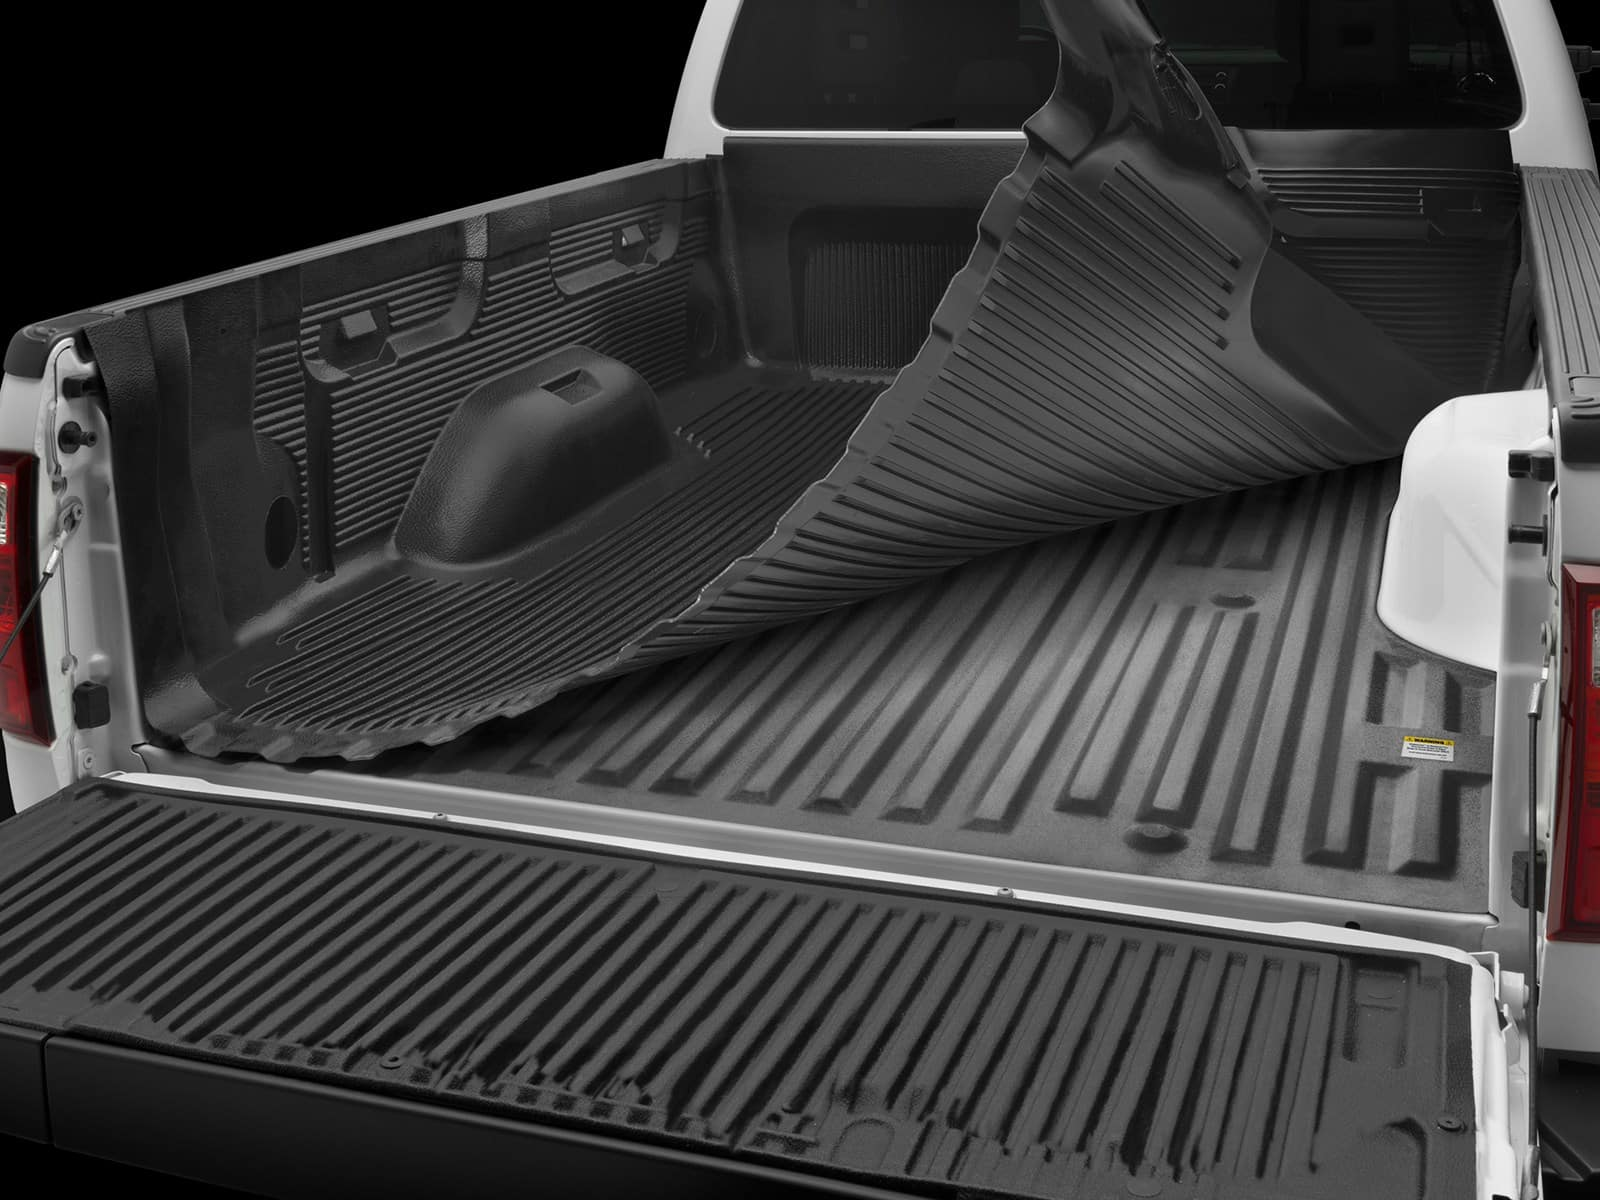 2 Types of Bedliners for Your Truck - Pros and Cons